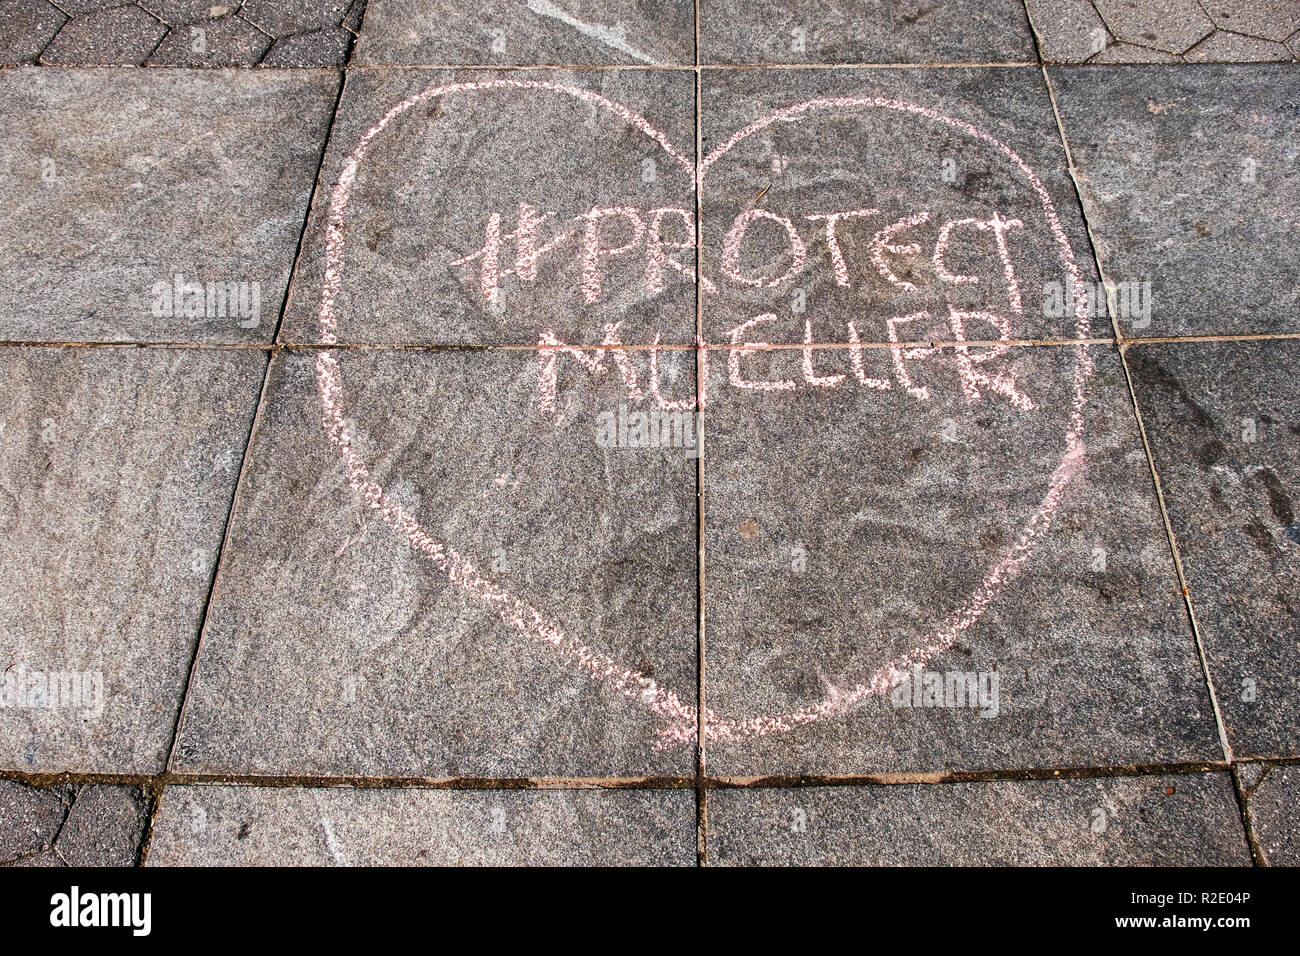 A chalk writing ion Washington Square Park urging people to protect the Robert Mueller investigation against Trump - Stock Image